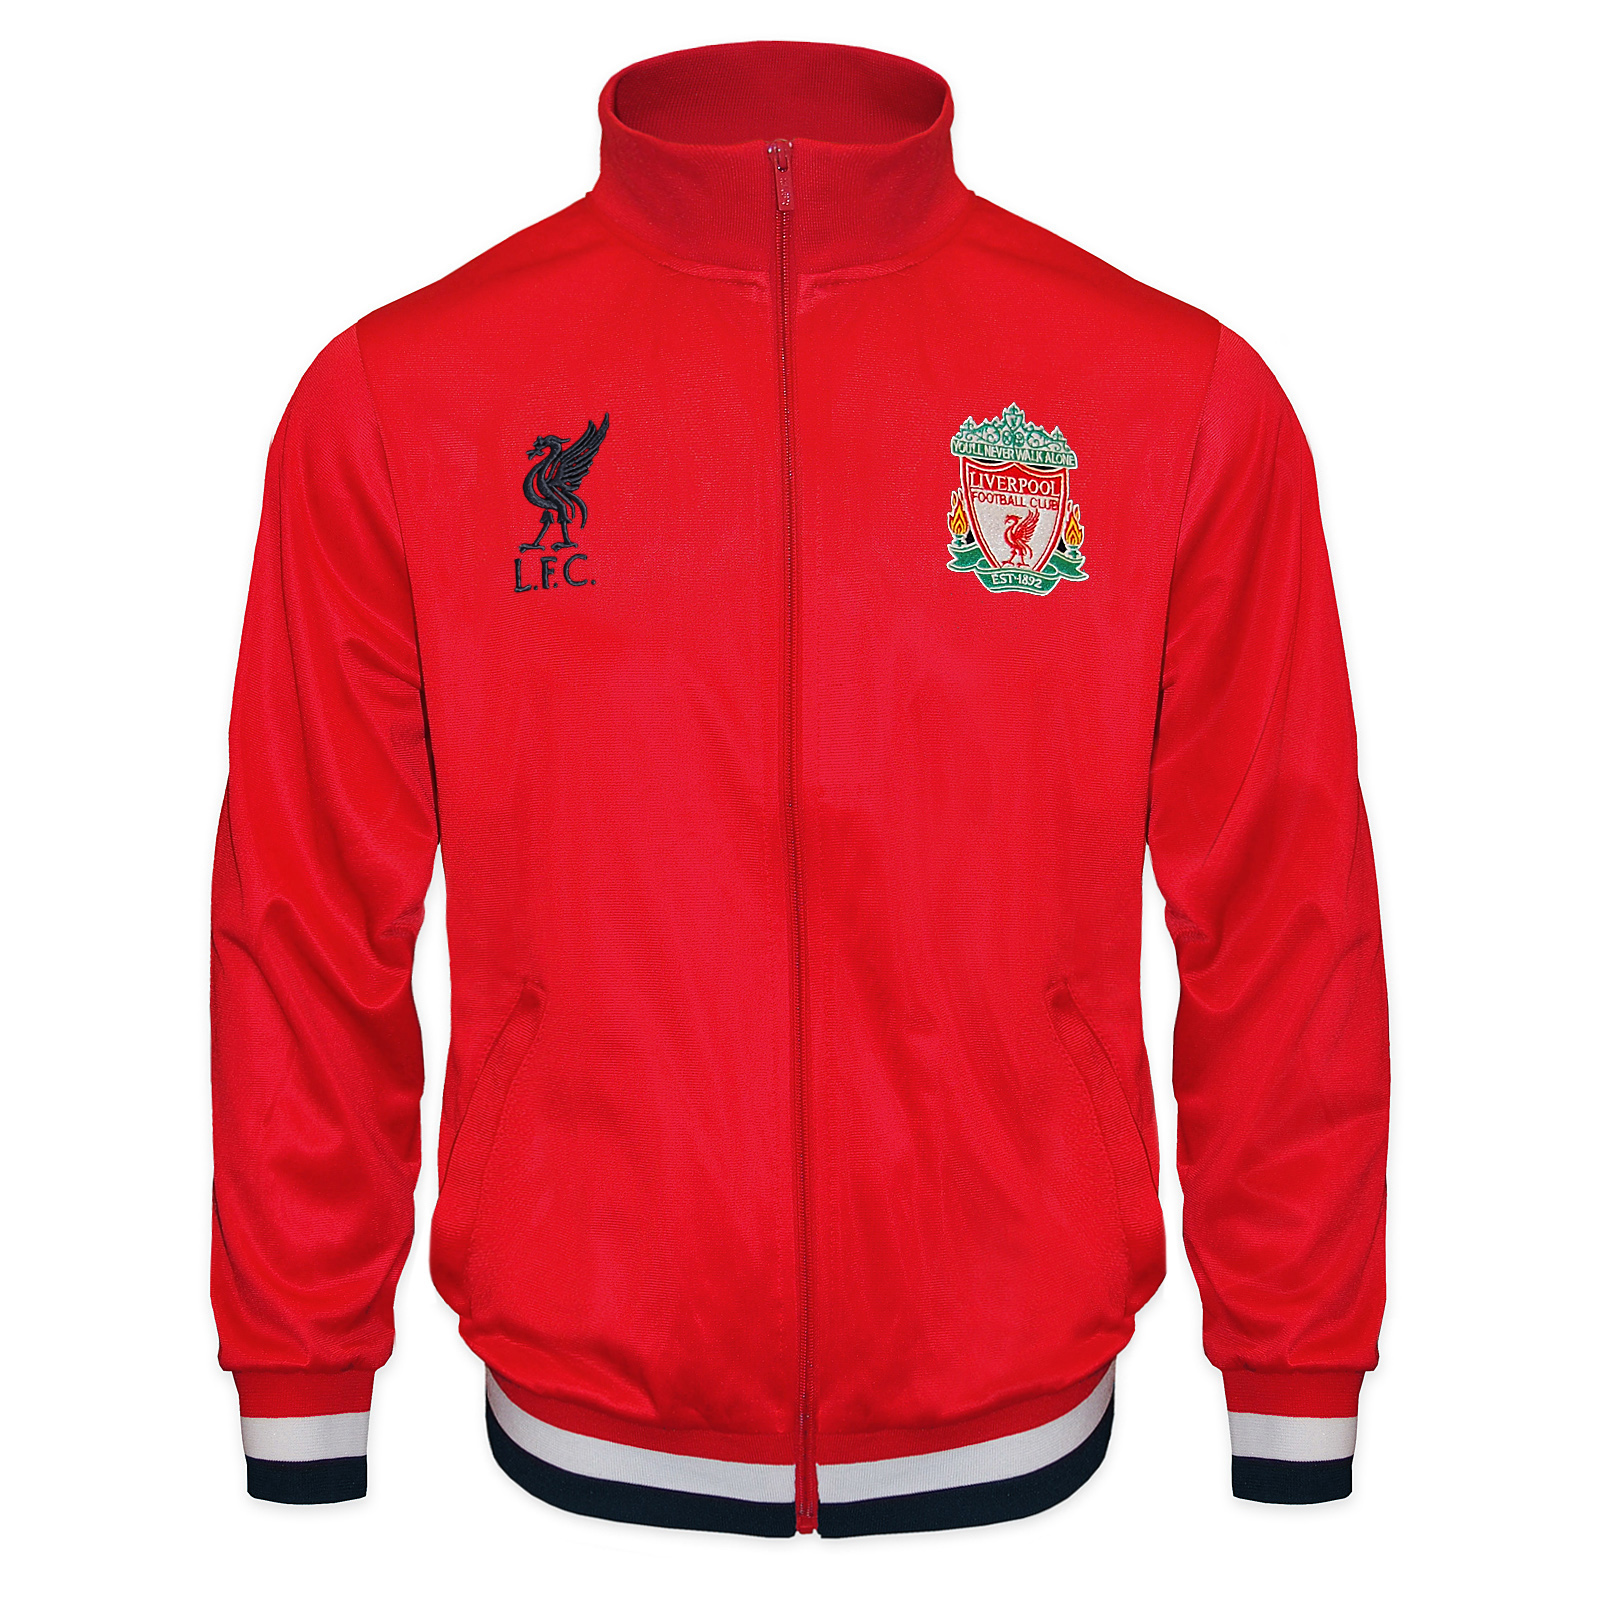 Shop Liverpool Jeans for women at sofltappreciate.tk Free shipping and returns!